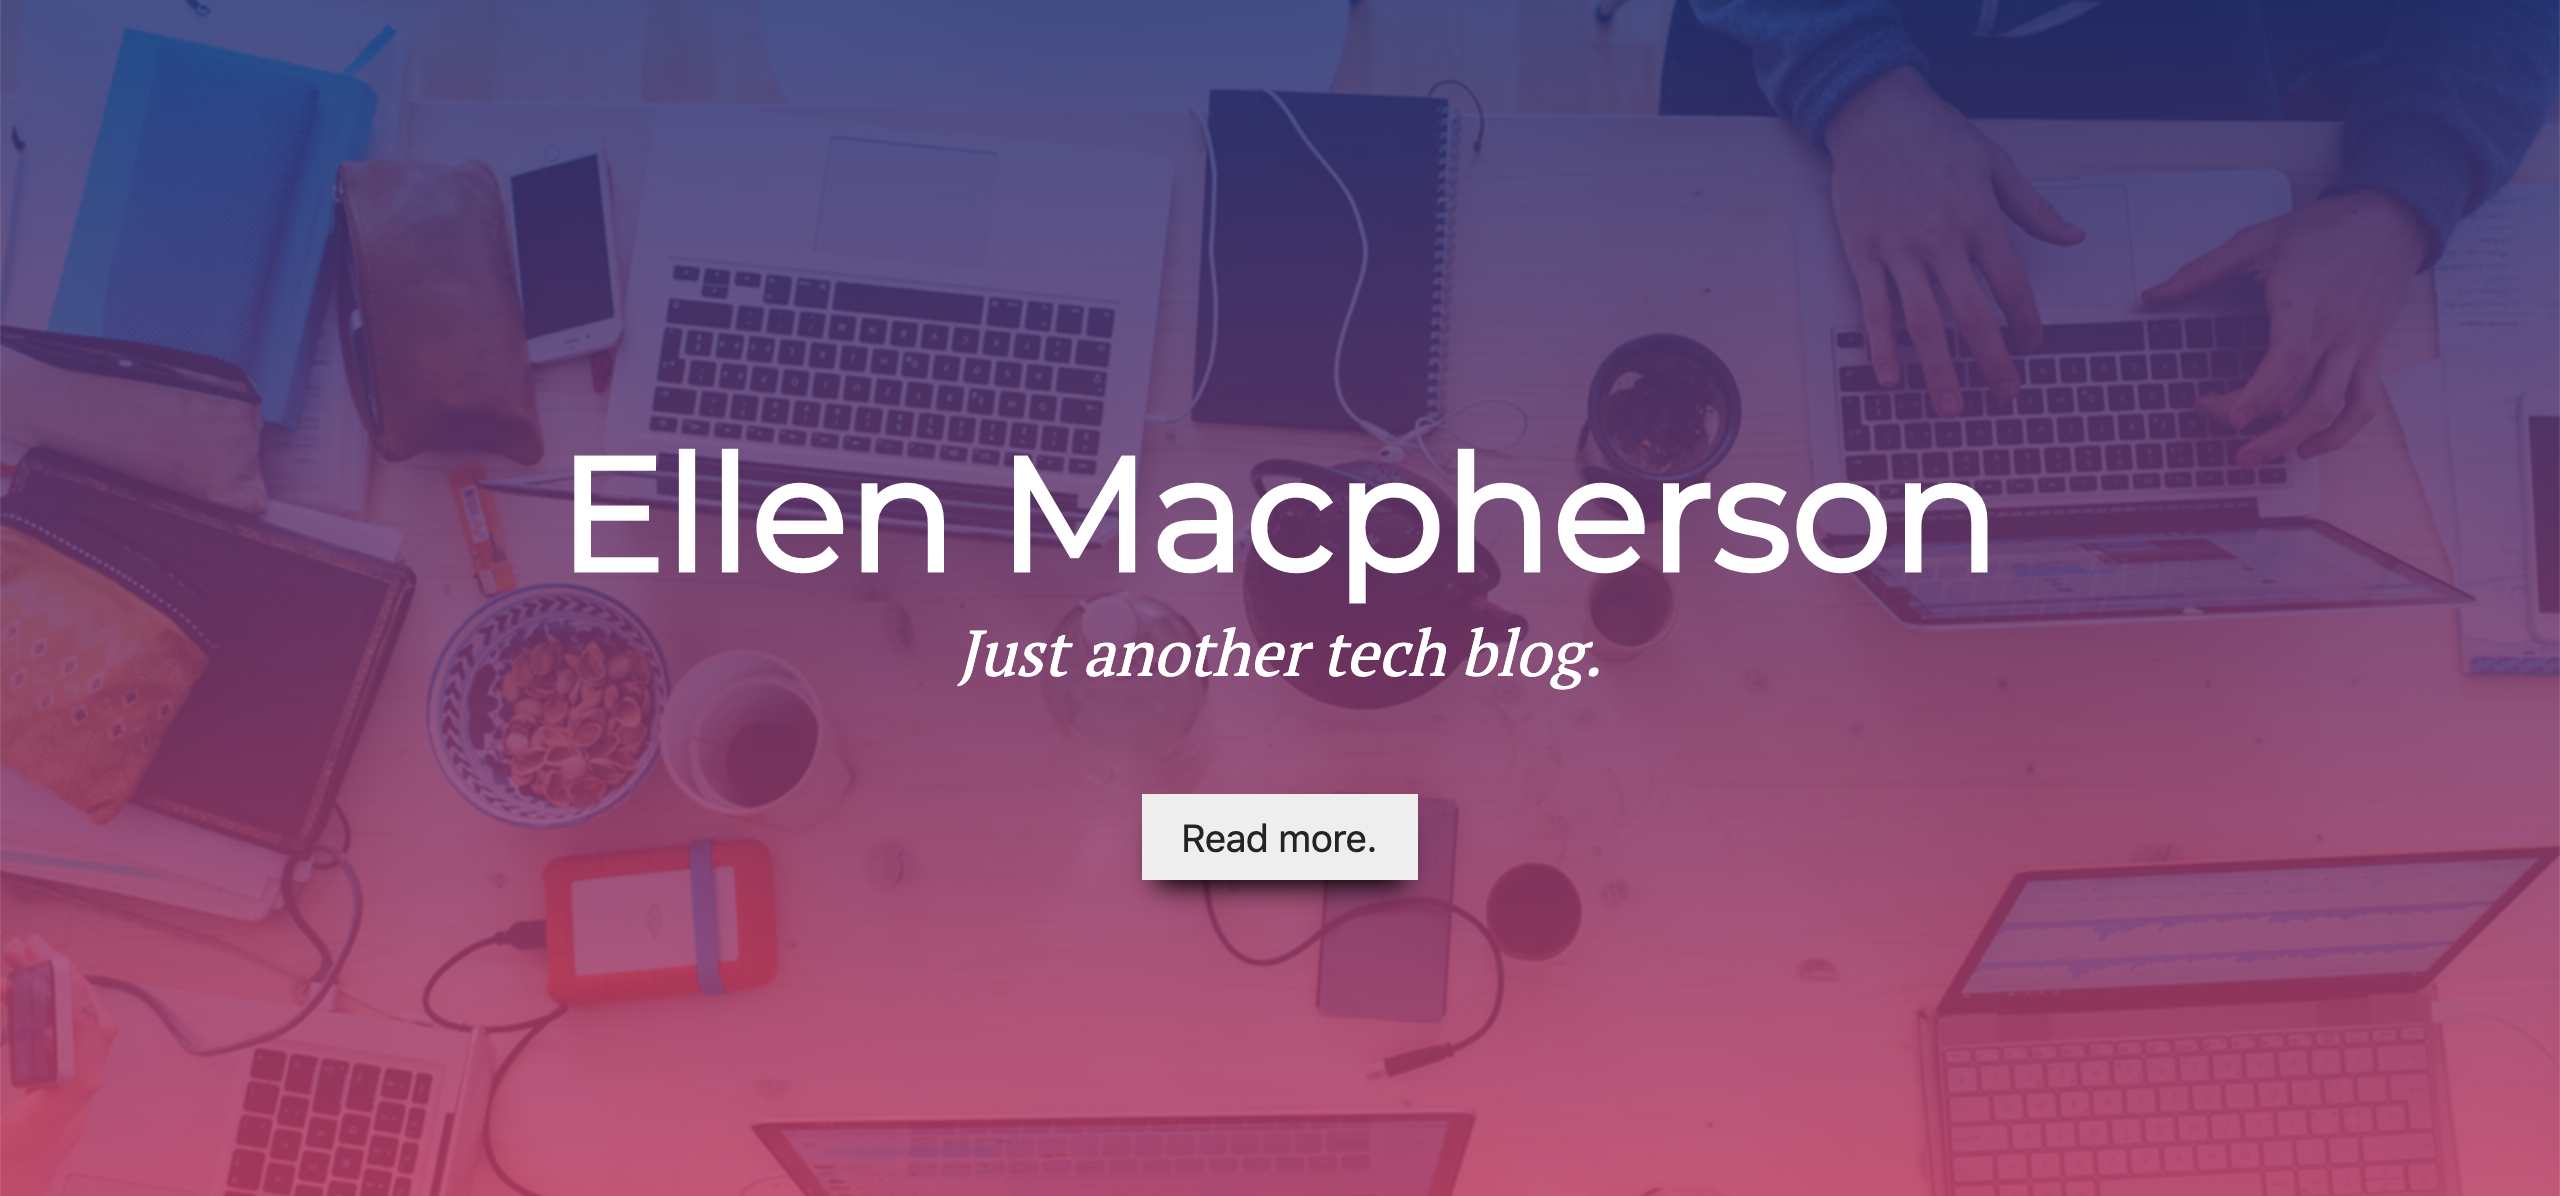 Header with pink and purple gradient overlay